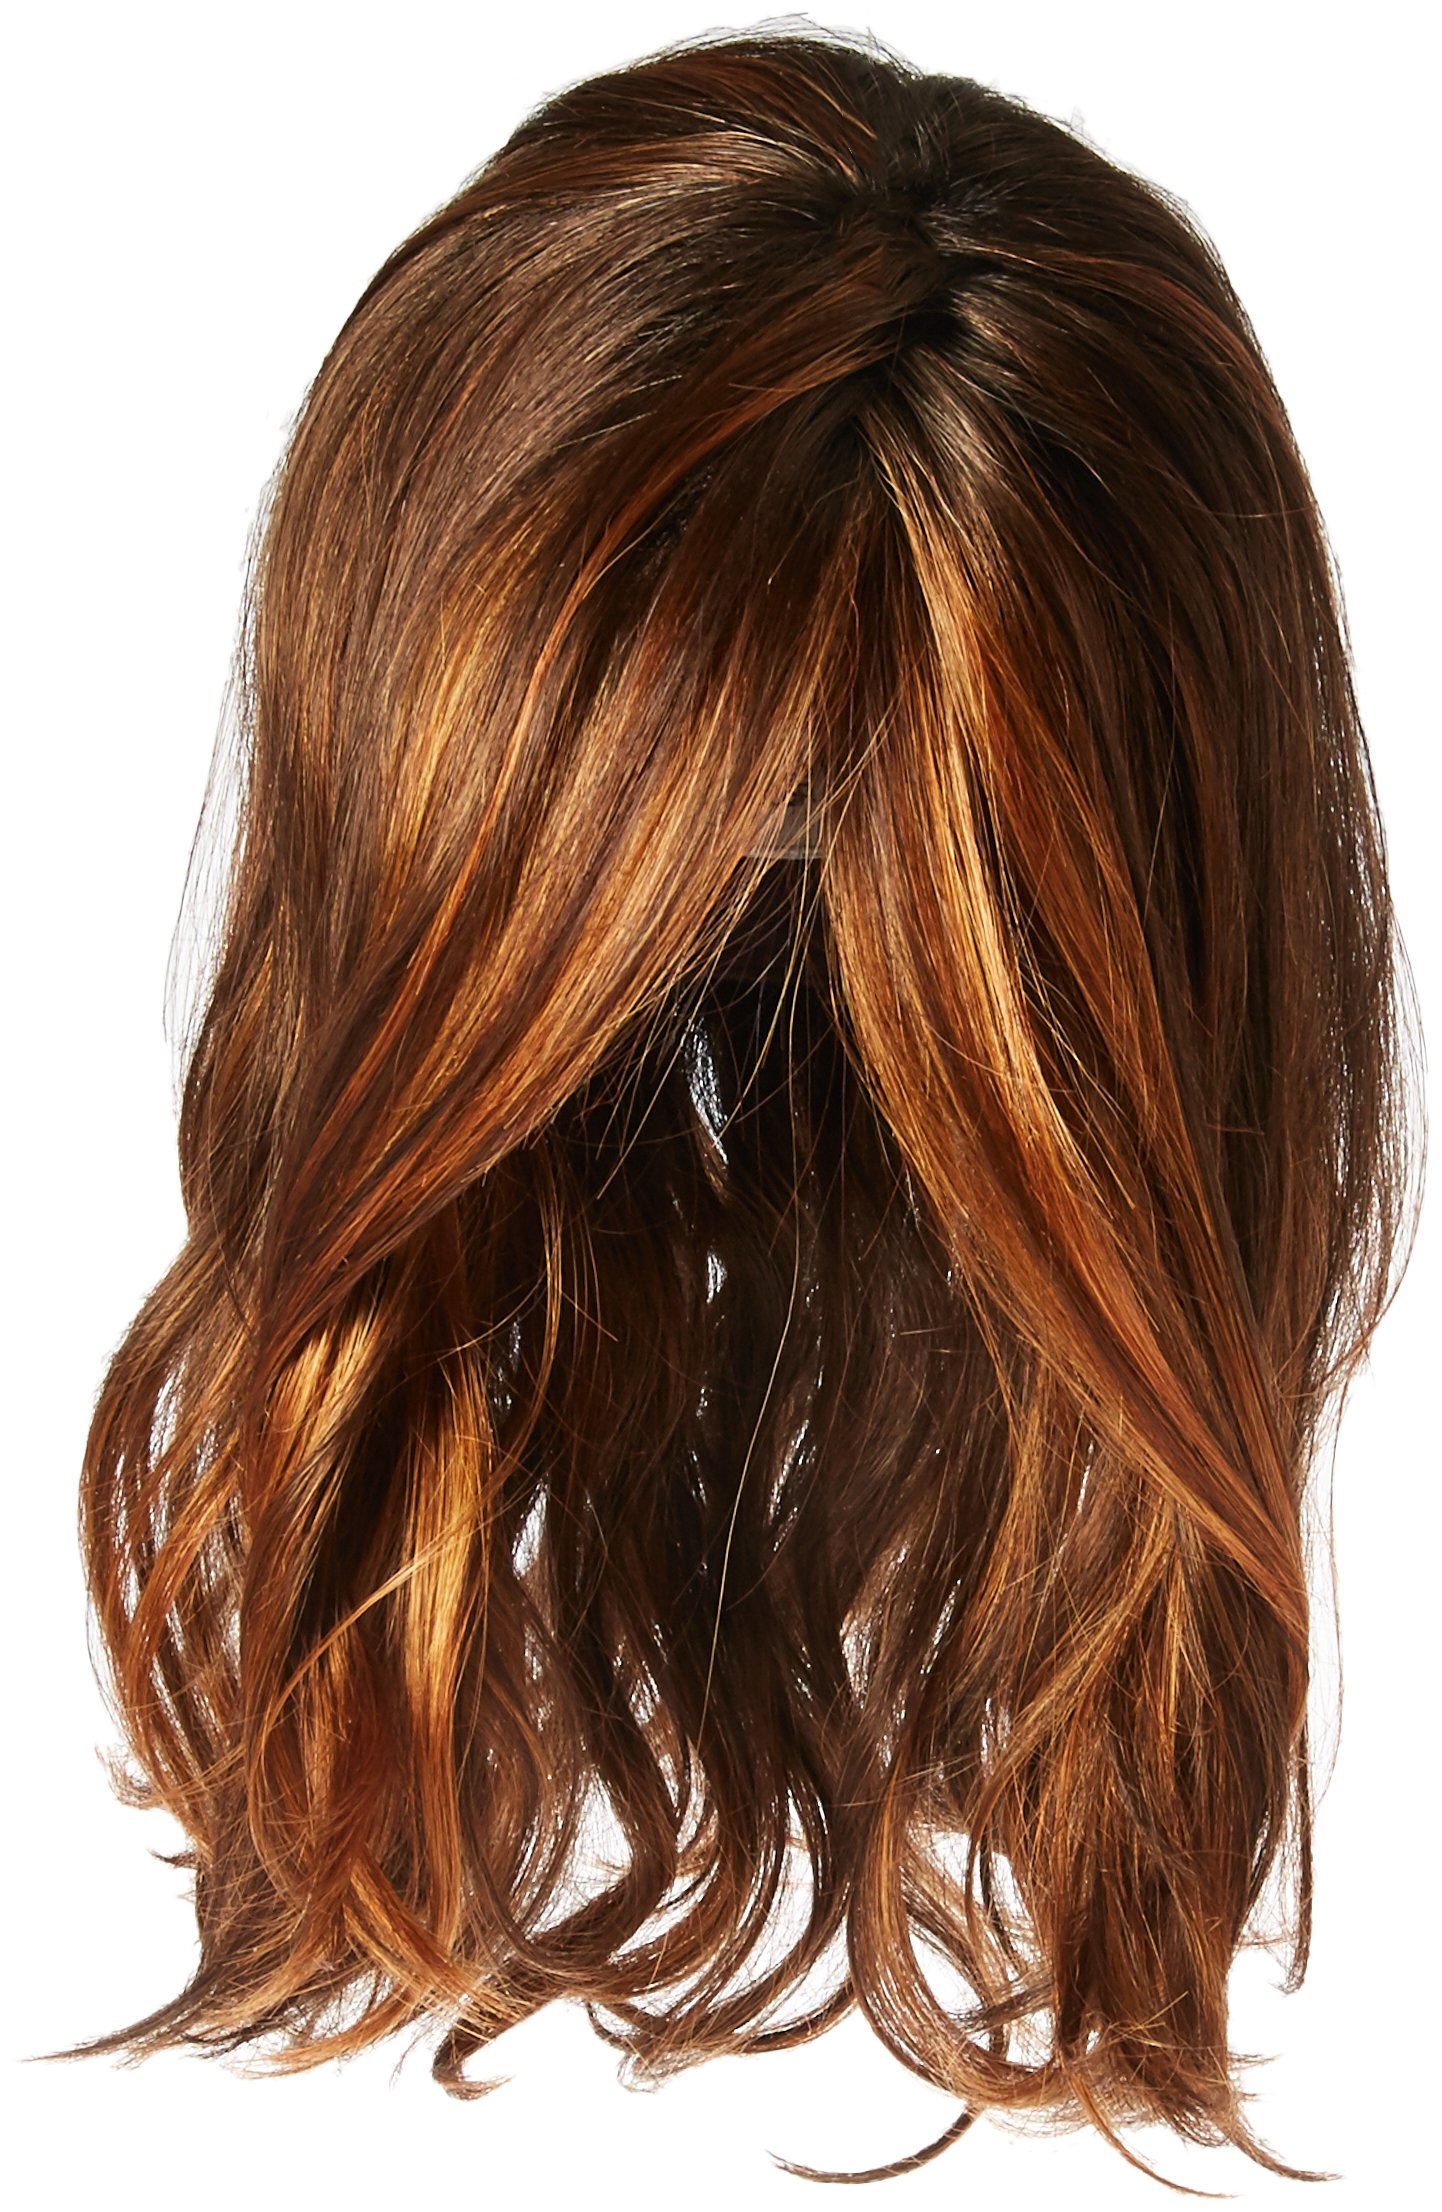 Hairdo Love Love Love Long Full Length Straight Hair With Soft Natural Wave Highlights, ss30/28 ss Spice by Hairuwear